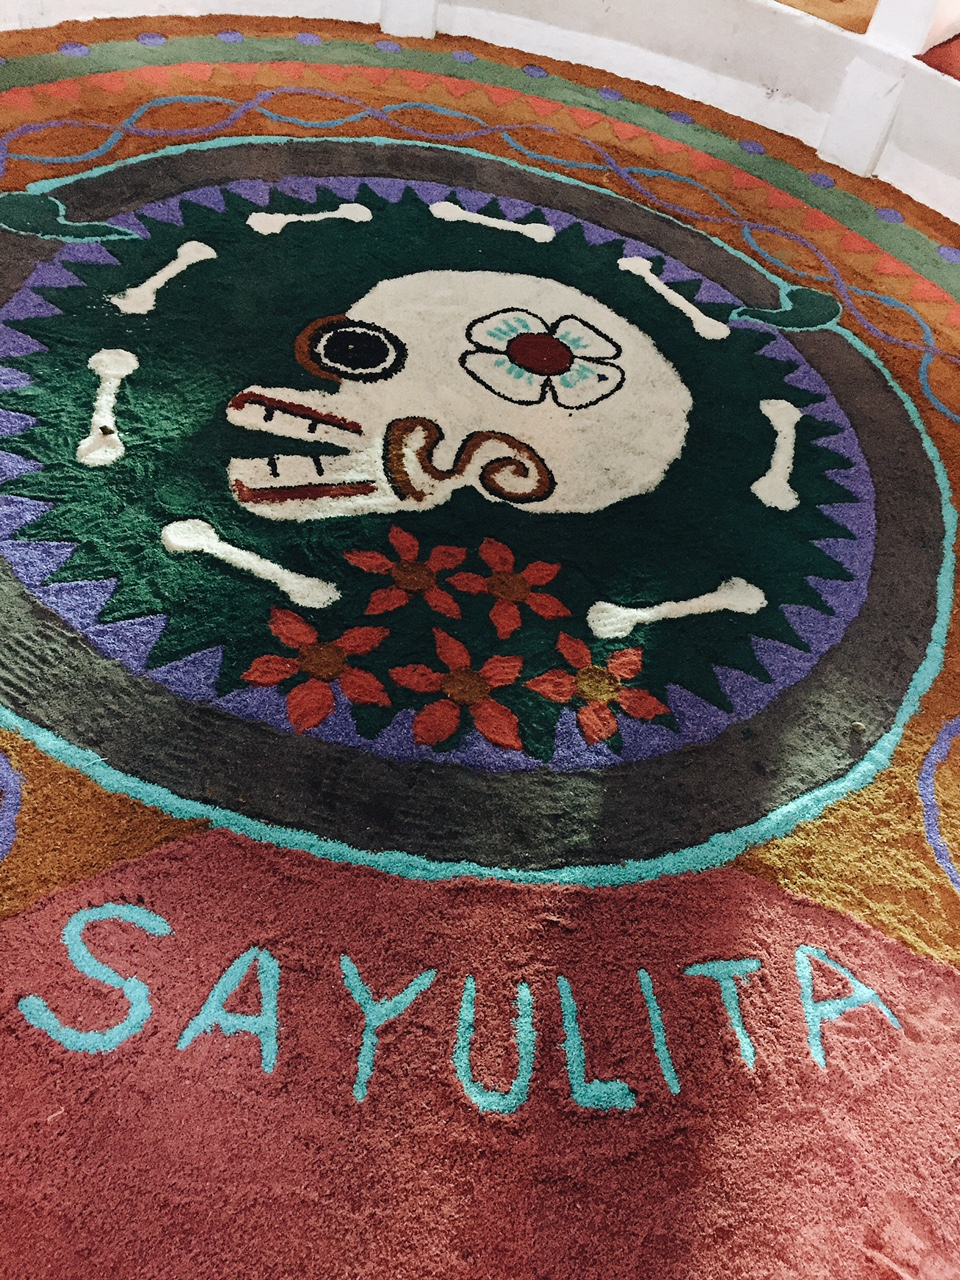 We arrived in Sayulita after spending a couple of quiet days in Puerto Vallarta getting our rusty Spanish tuned up, landing on the first night of Dia De Los Muertos and it was pure magic!